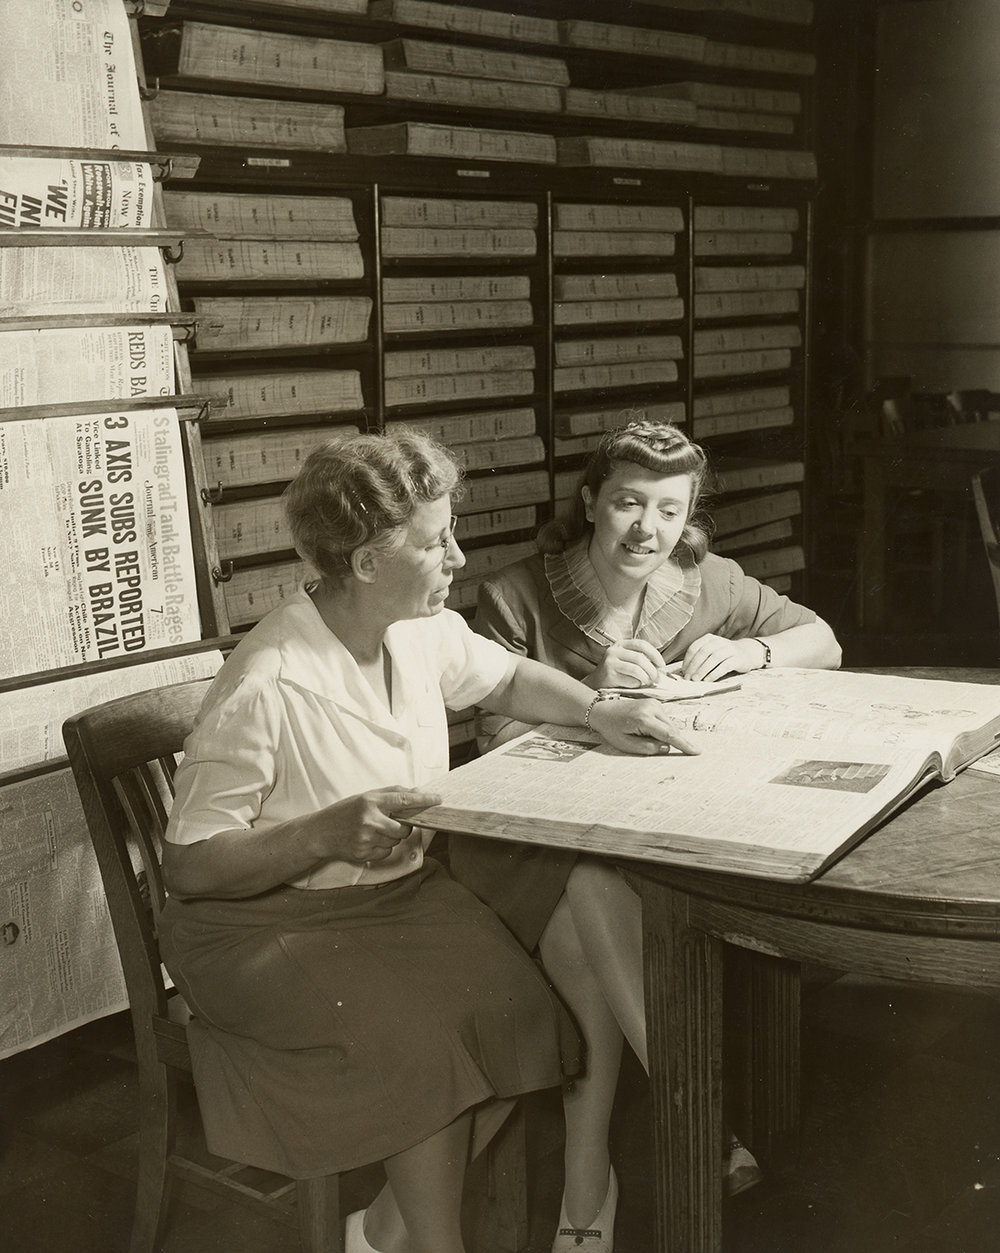 Rebecca Rankin, Librarian, Municipal Reference Library (Left) with Lillian Slaughter, Latin American Scholarship winner from Chile, September 29, 1942. Mayor LaGuardia Collection, NYC Municipal Archives.